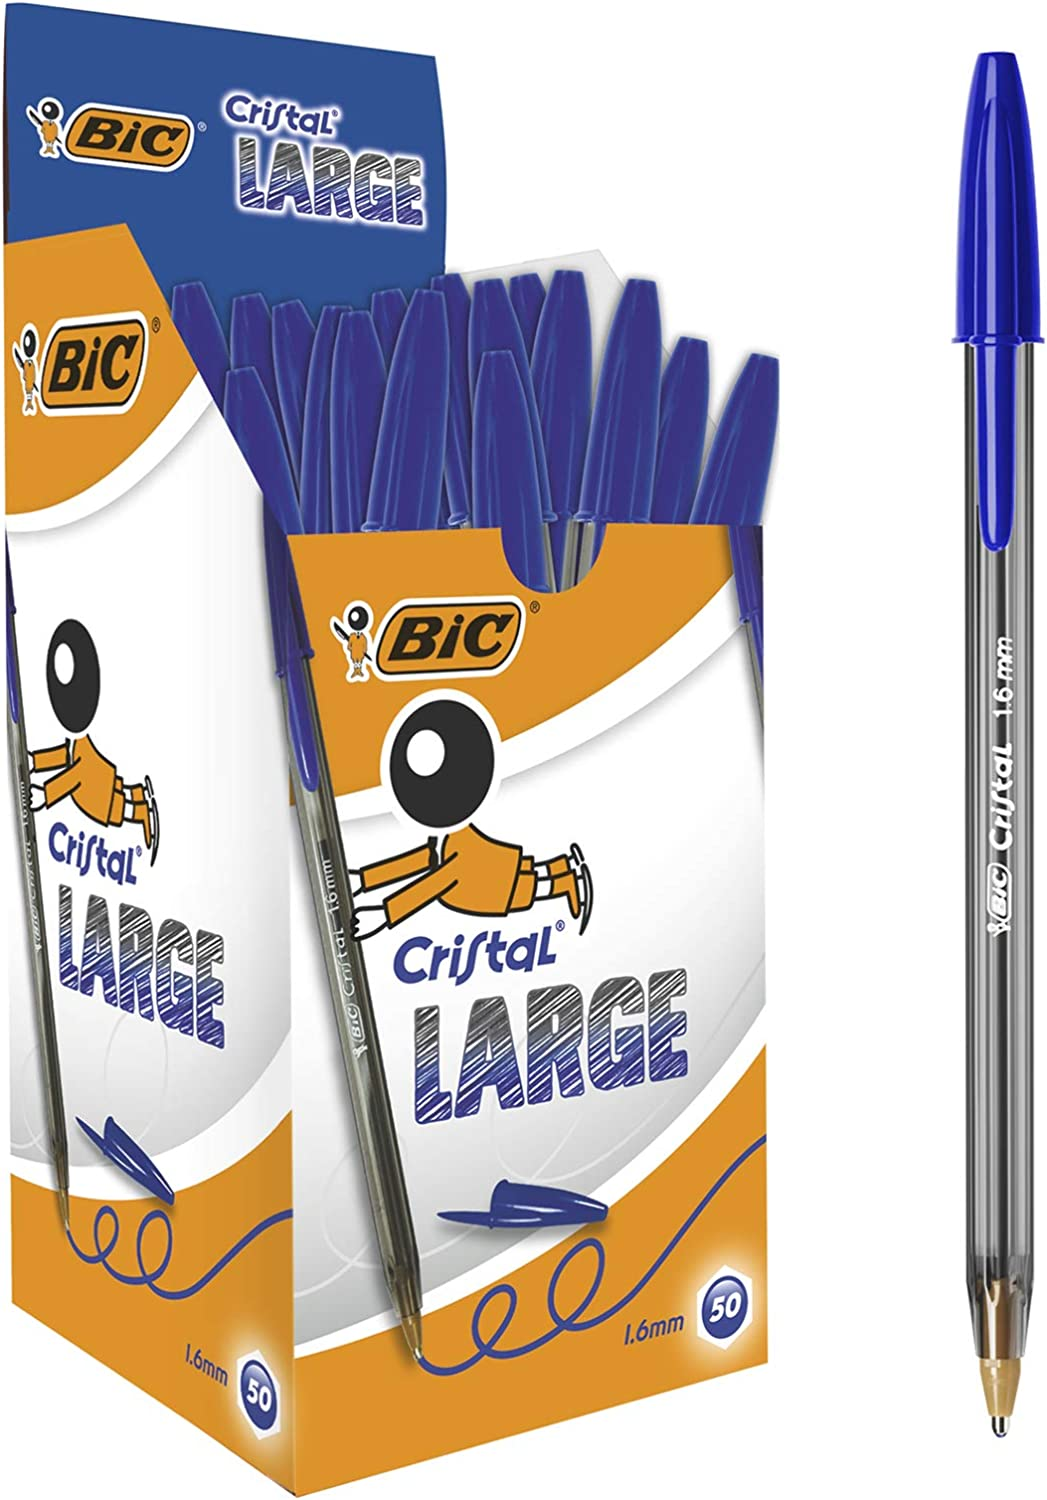 BIC CRISTAL LARGE 1.6MM BLUE 880656 by BIC